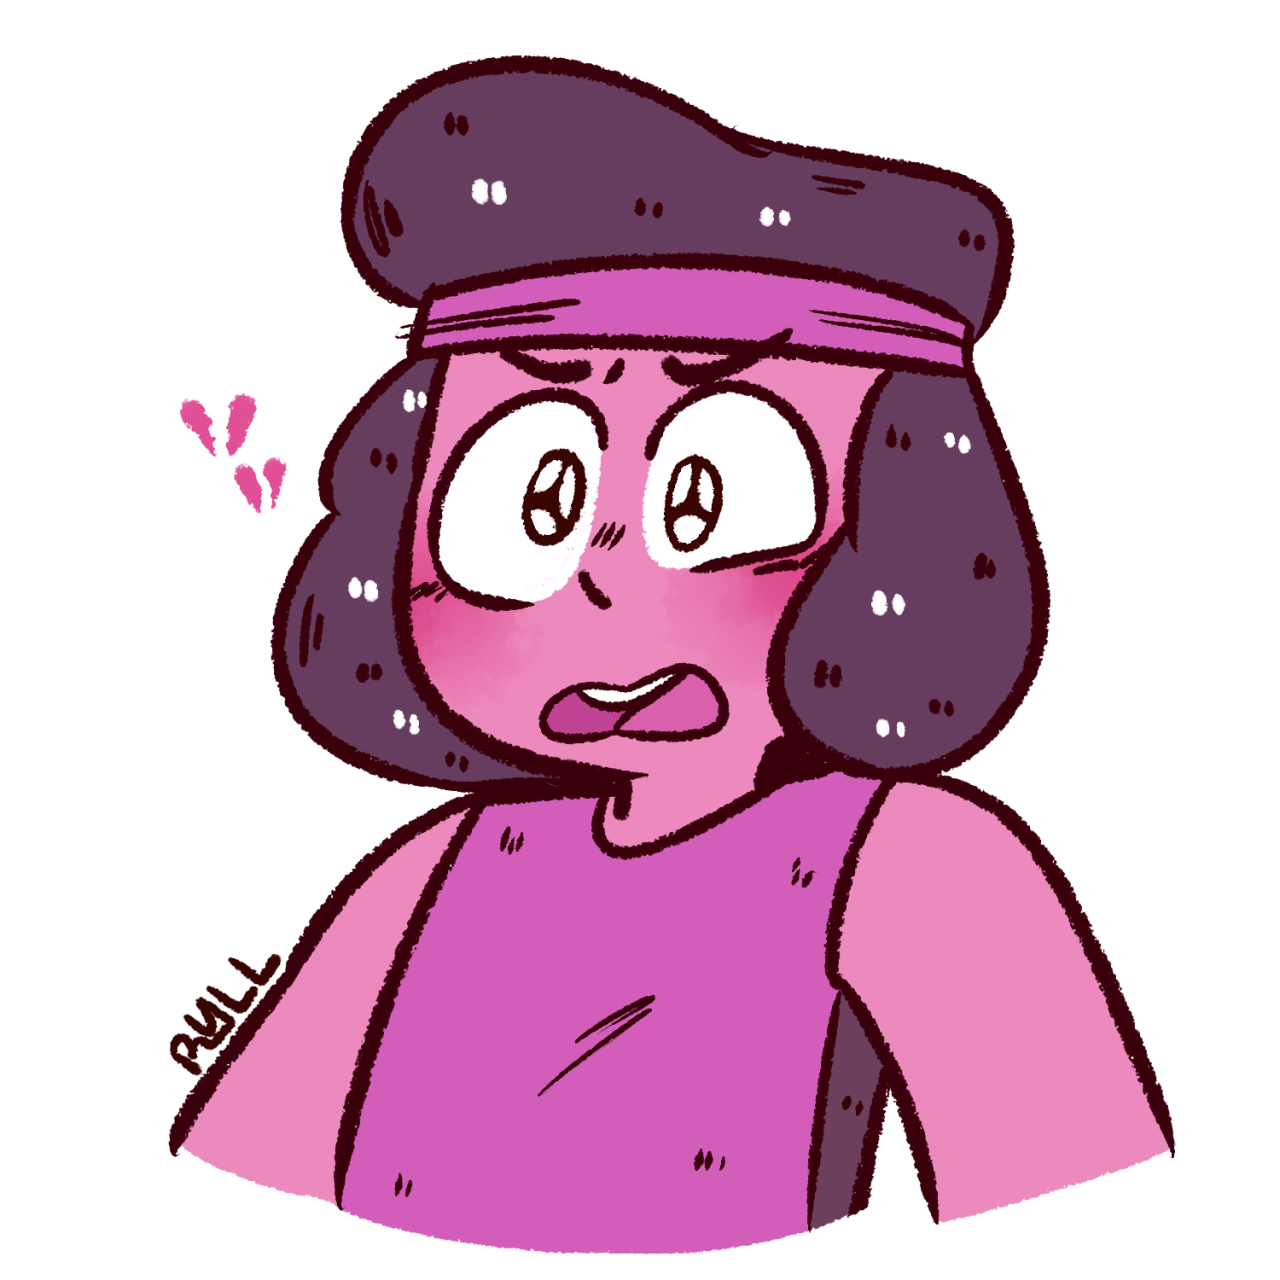 beanilee said: RUBY FROM SU IN D2 !!! ((for the blushing meme !!)) Answer: aaand a sad ruby :p